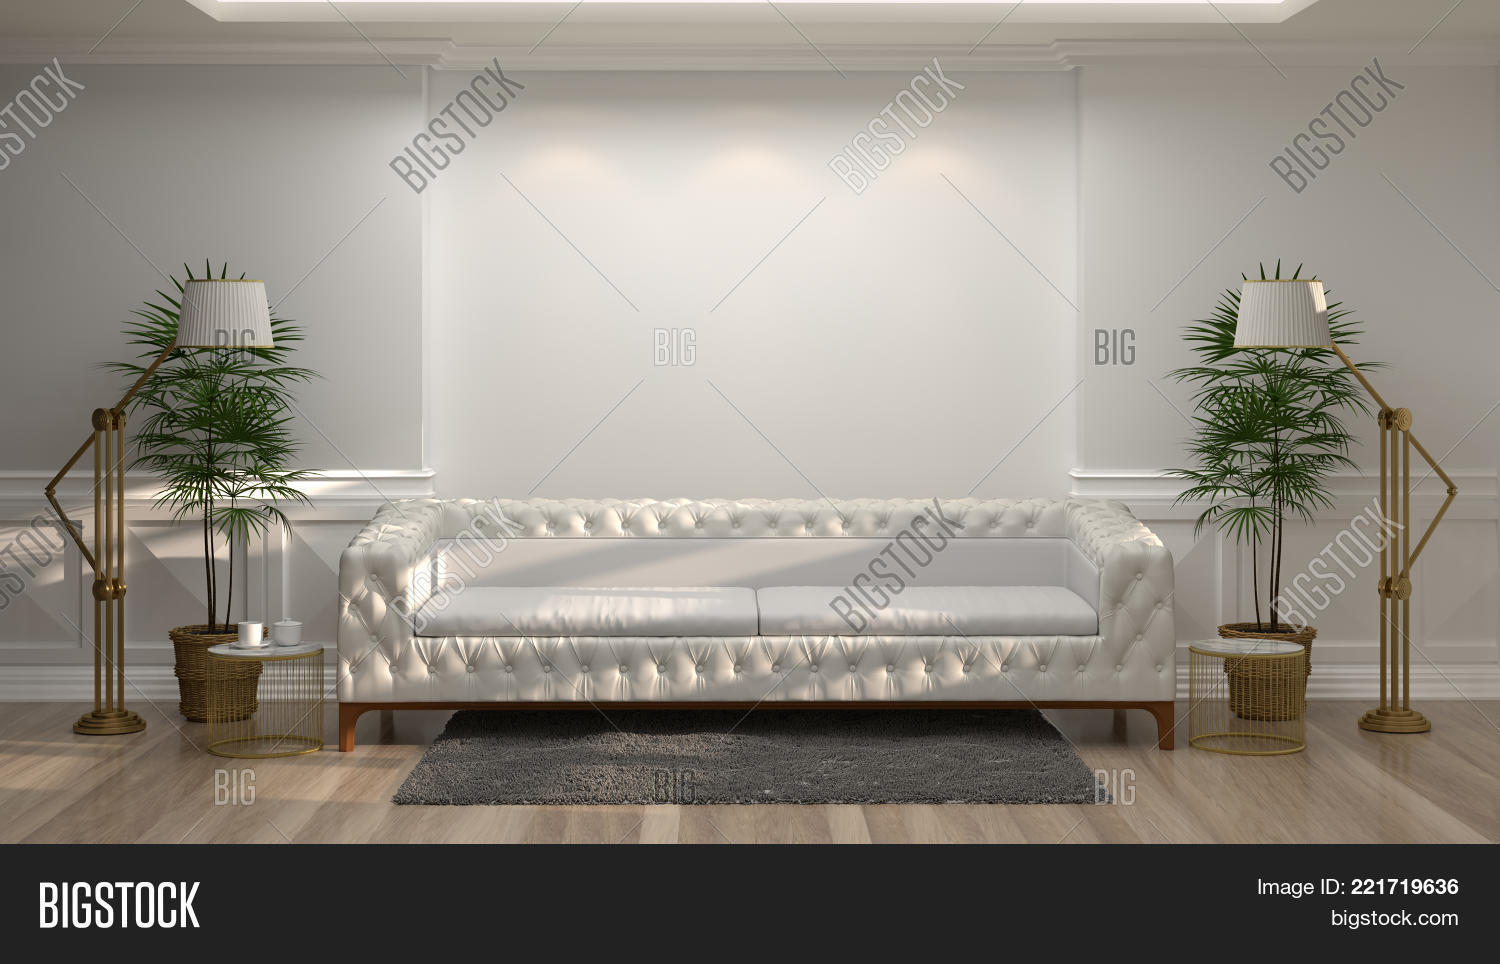 Awesome White Sofa Front Empty Image Photo Free Trial Bigstock Short Links Chair Design For Home Short Linksinfo